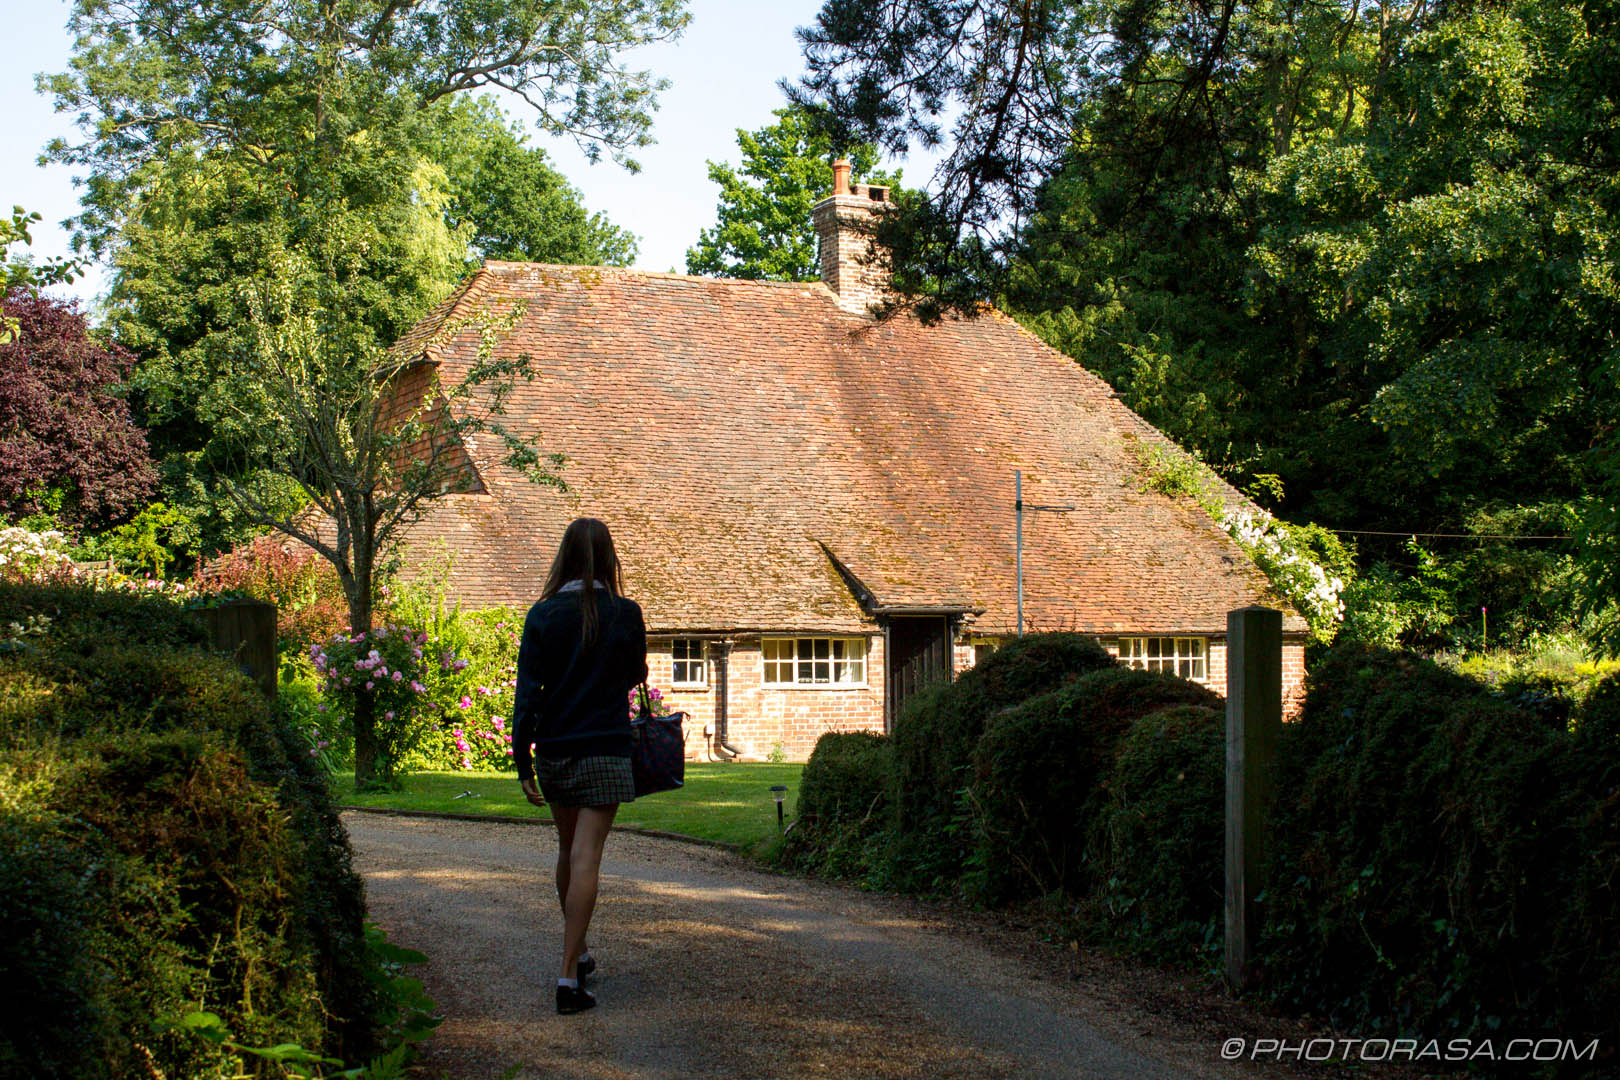 http://photorasa.com/chiddingstone-castle/girl-returning-home-to-high-roofed-house/